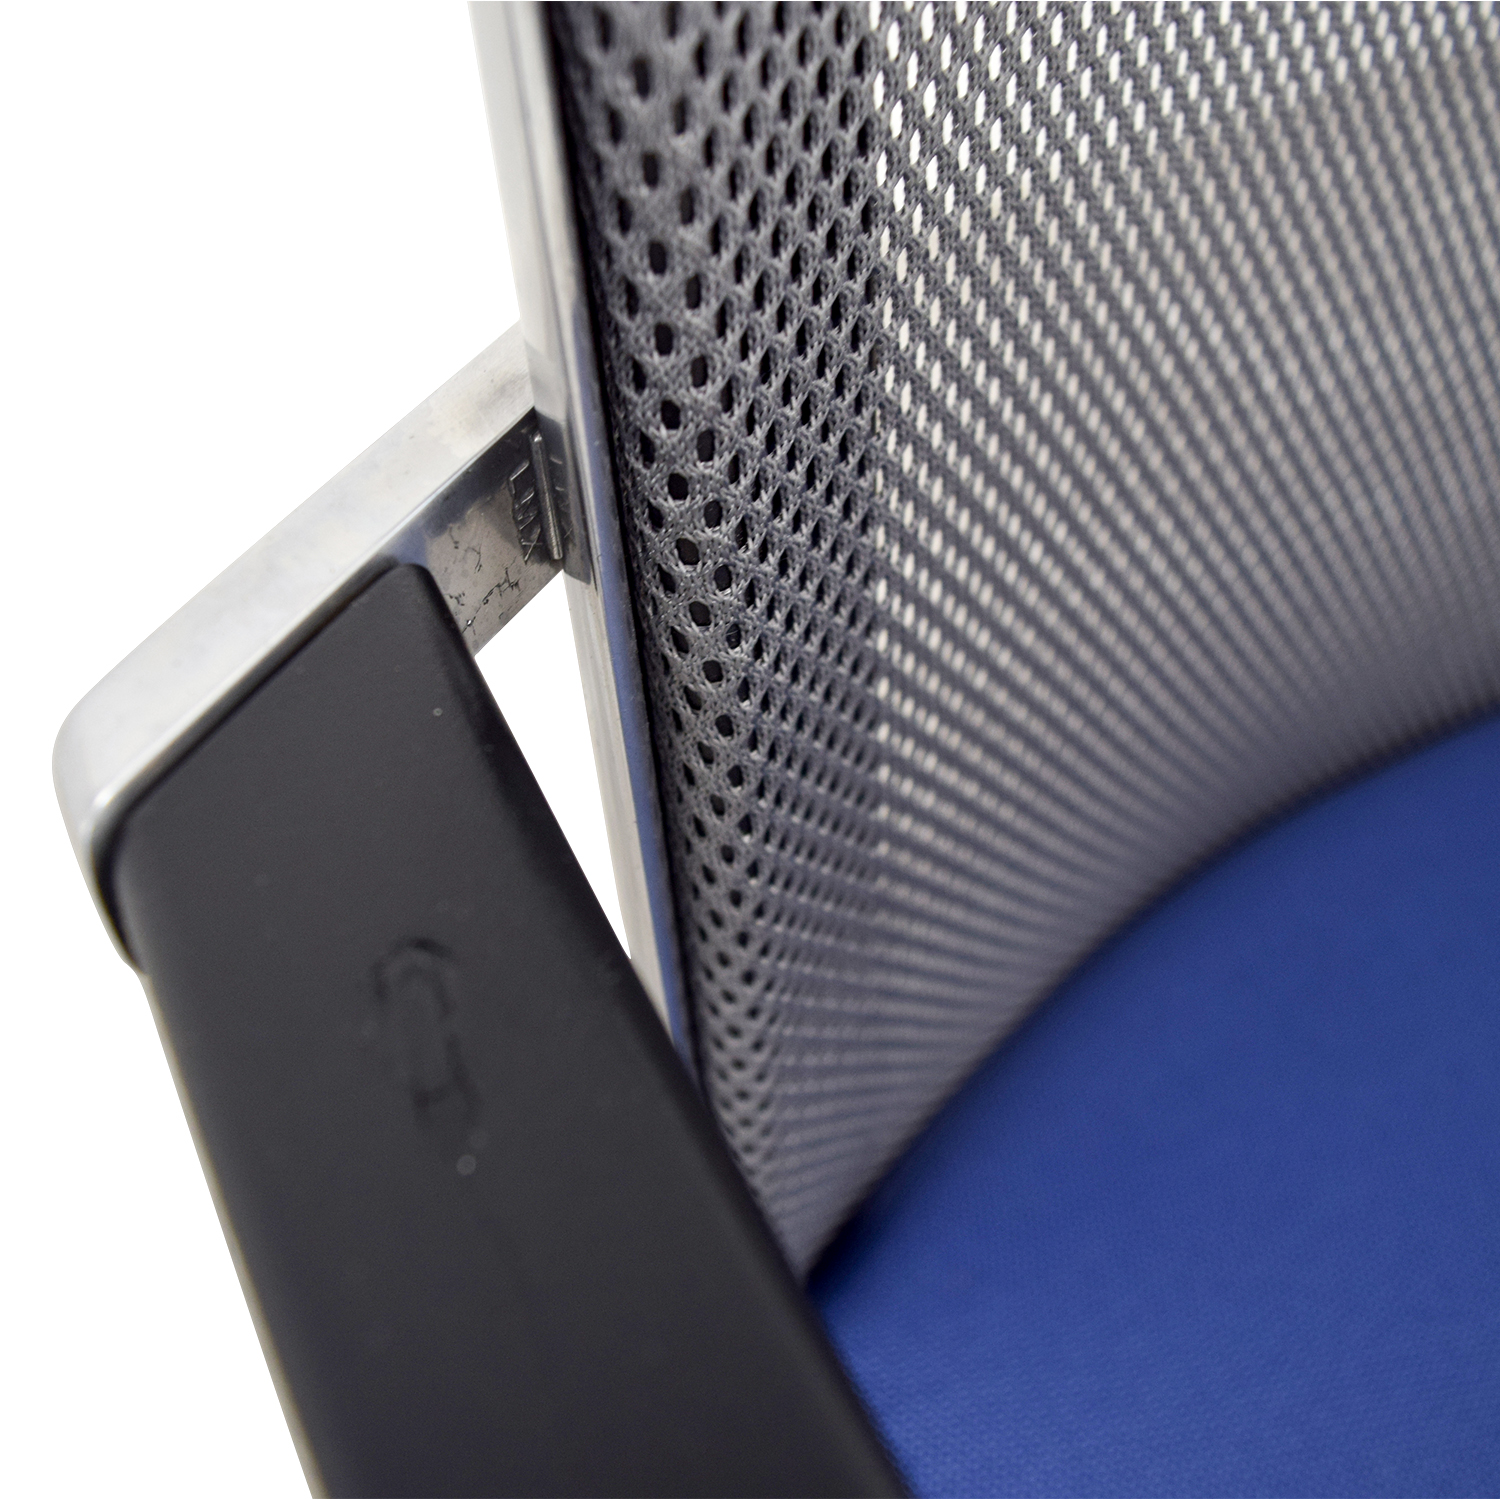 Interstuhl Interstuhl X565 Blue and Chrome Chair for sale